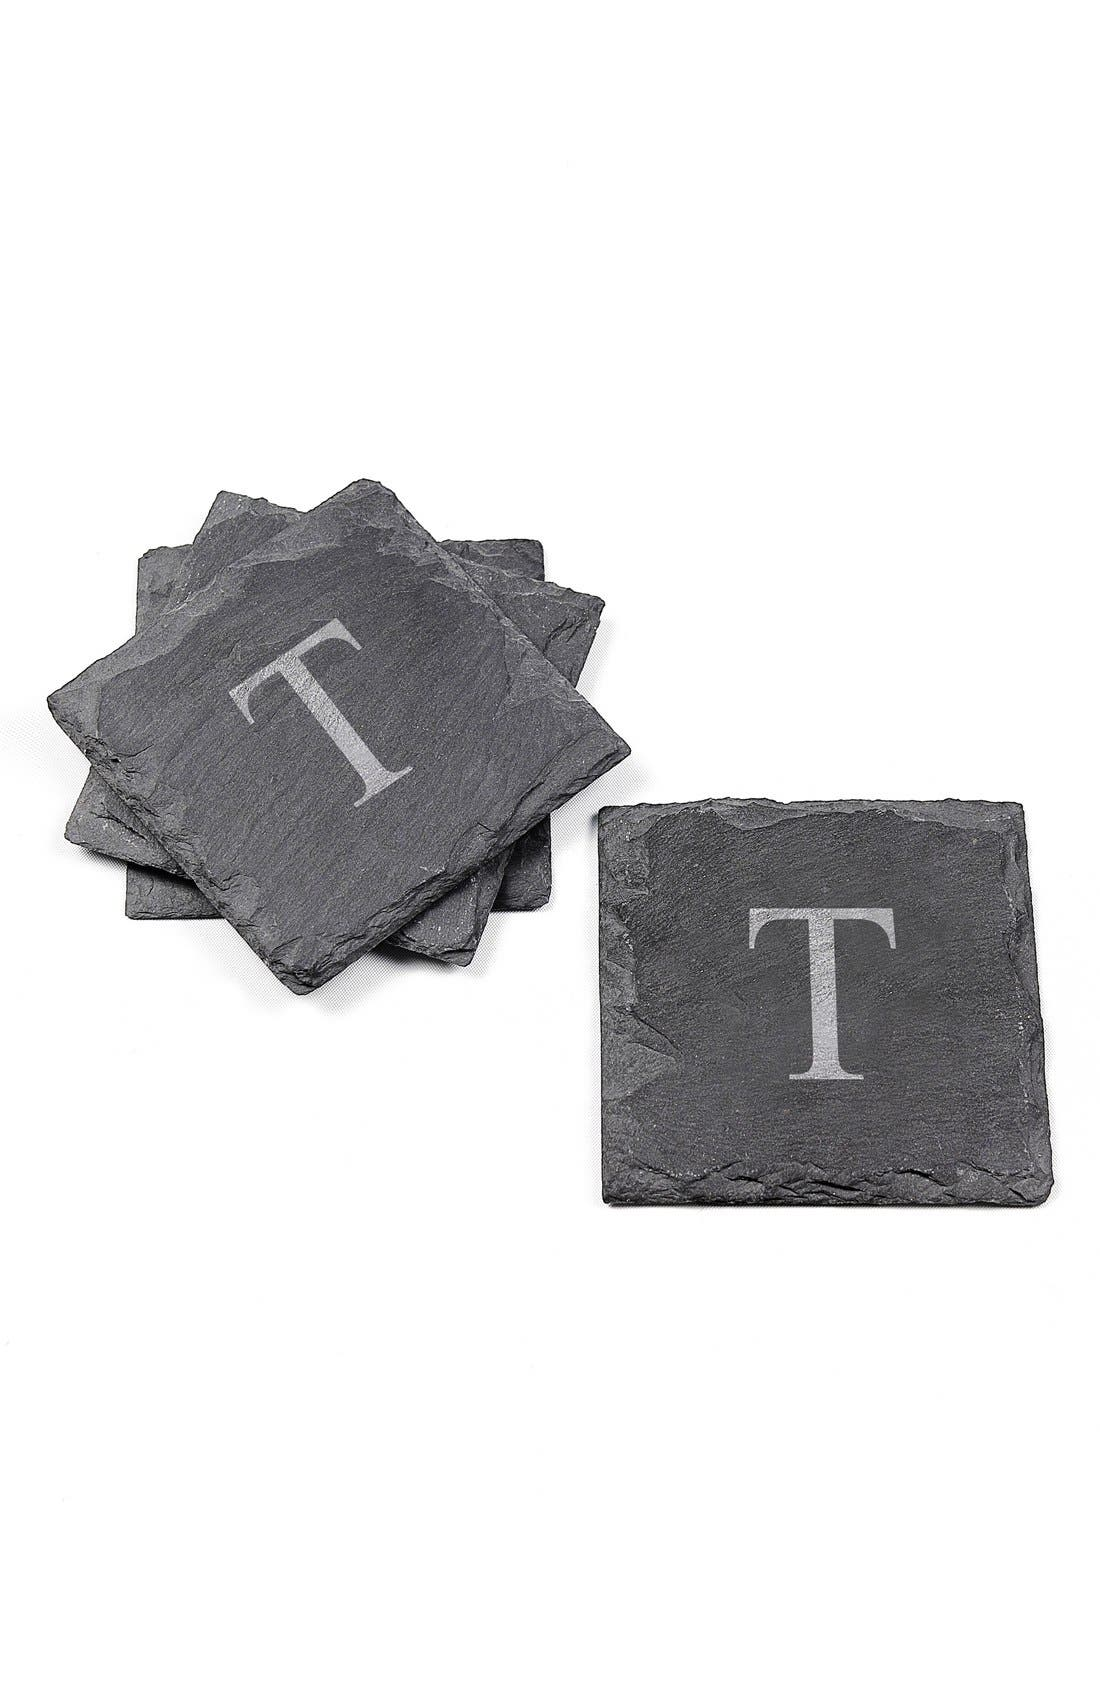 Monogram Slate Coasters,                             Main thumbnail 1, color,                             T